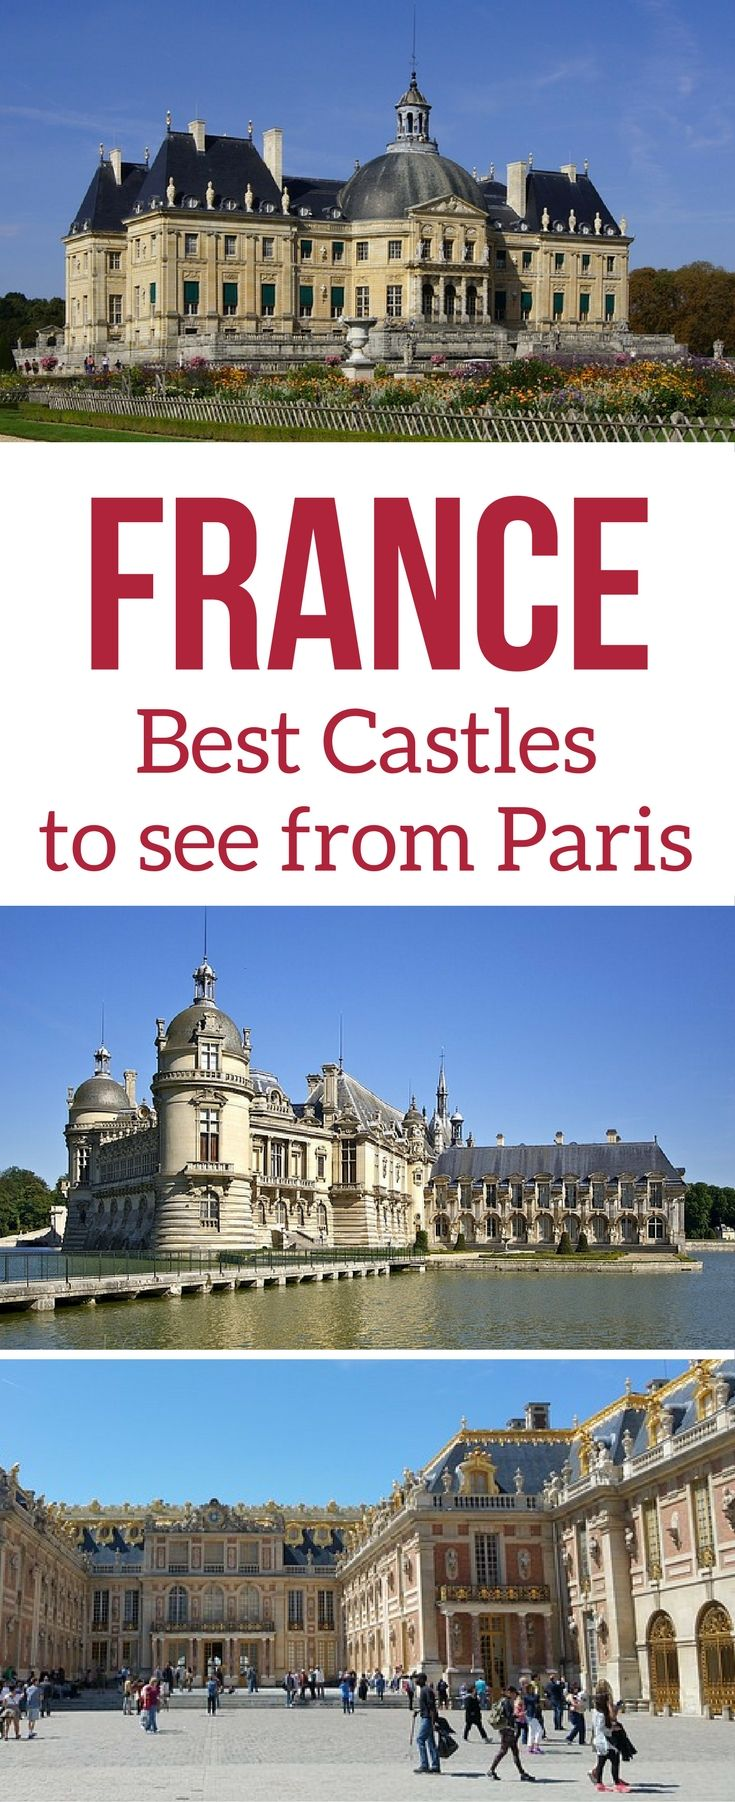 35 best day trips from paris france guide map tips by local paris travel some of the best day trips from paris france are to see magnificent french castles unesco sites as well as other castles with impressive gumiabroncs Gallery